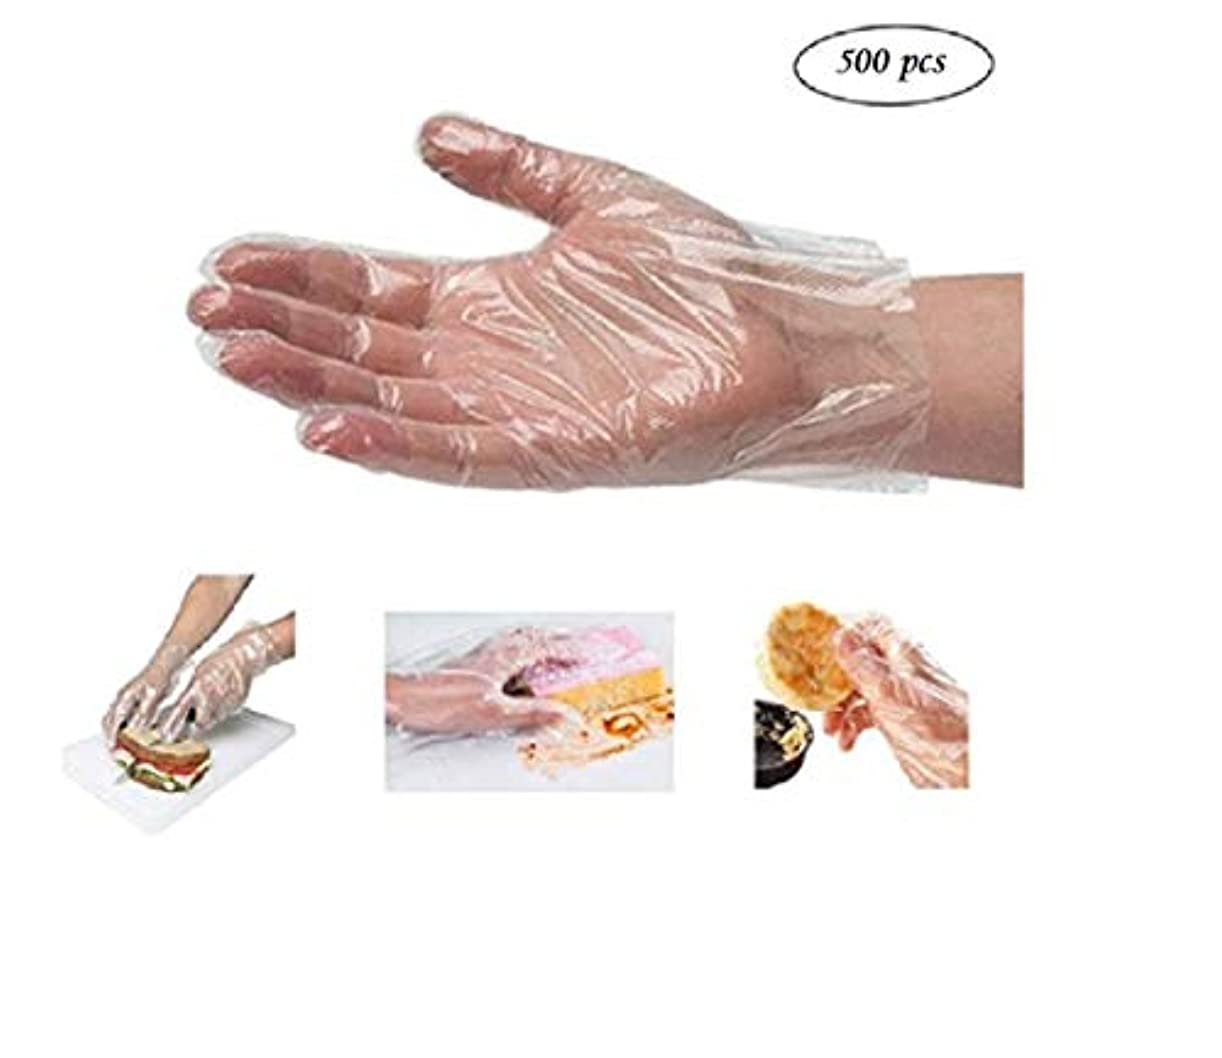 排他的嘆く真実に(5) - BYP Clear Disposable Plastic High Density Polyethylene Gloves Sterile Disposable Safety Gloves(500 Sheets...